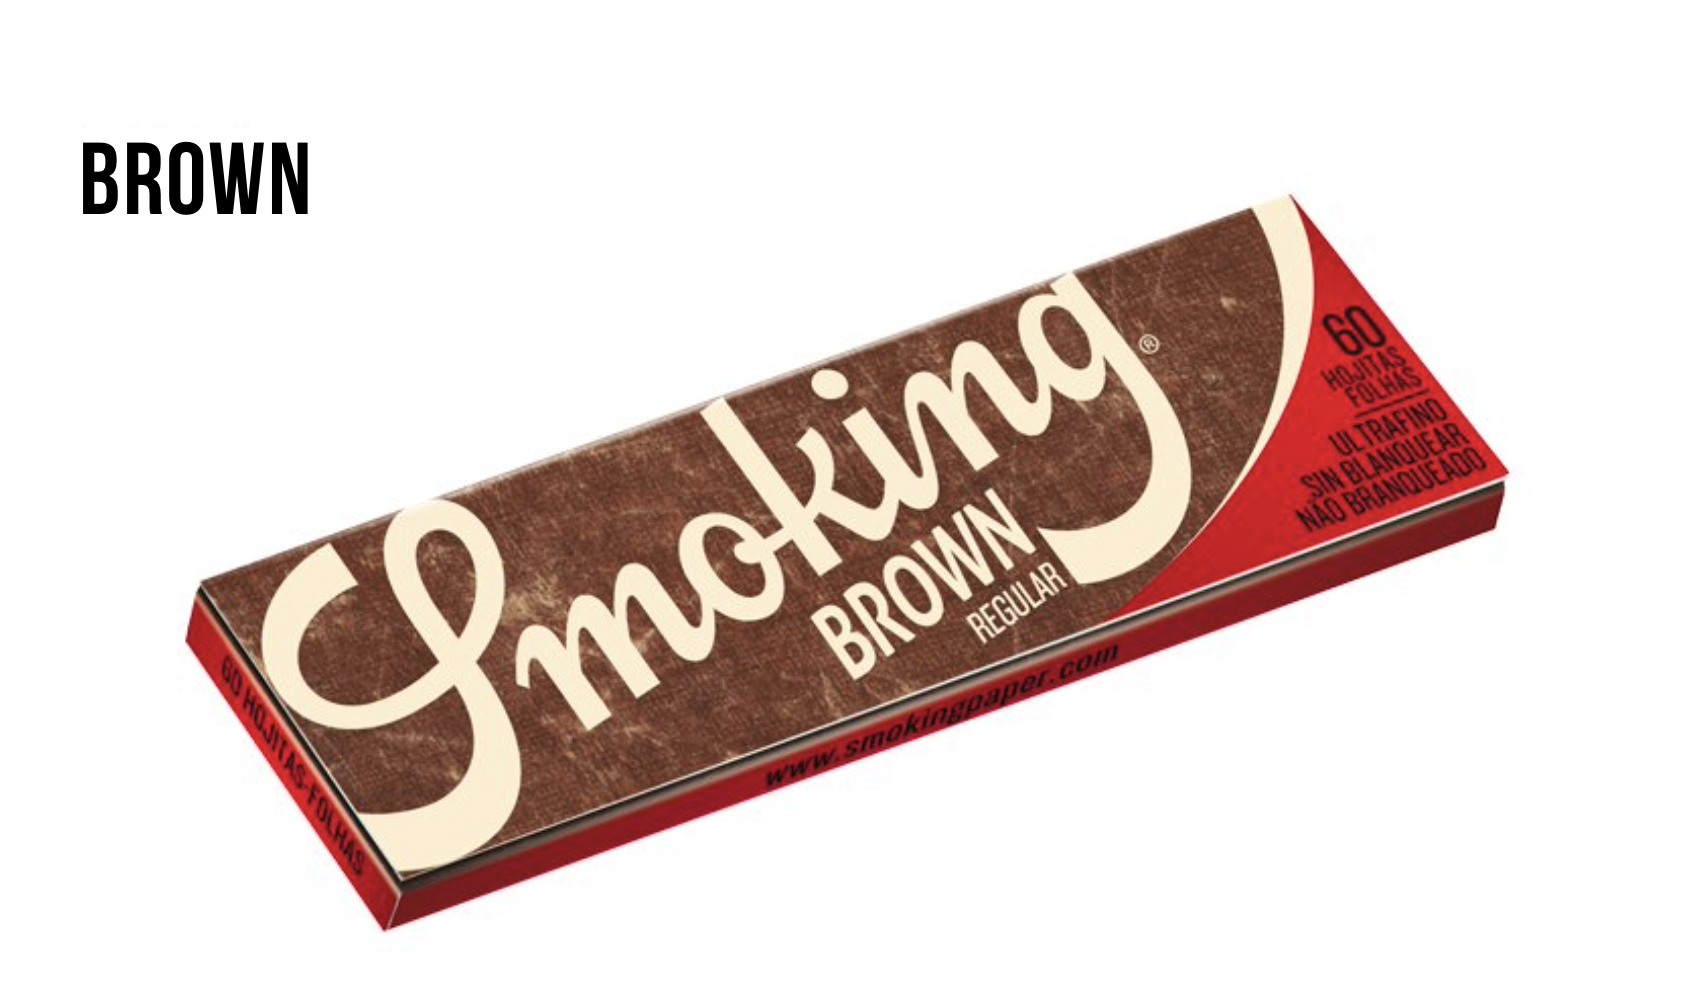 Smoking® Brown Rolling Paper, Regular size, unbleached paper, and totally free of chlorine.